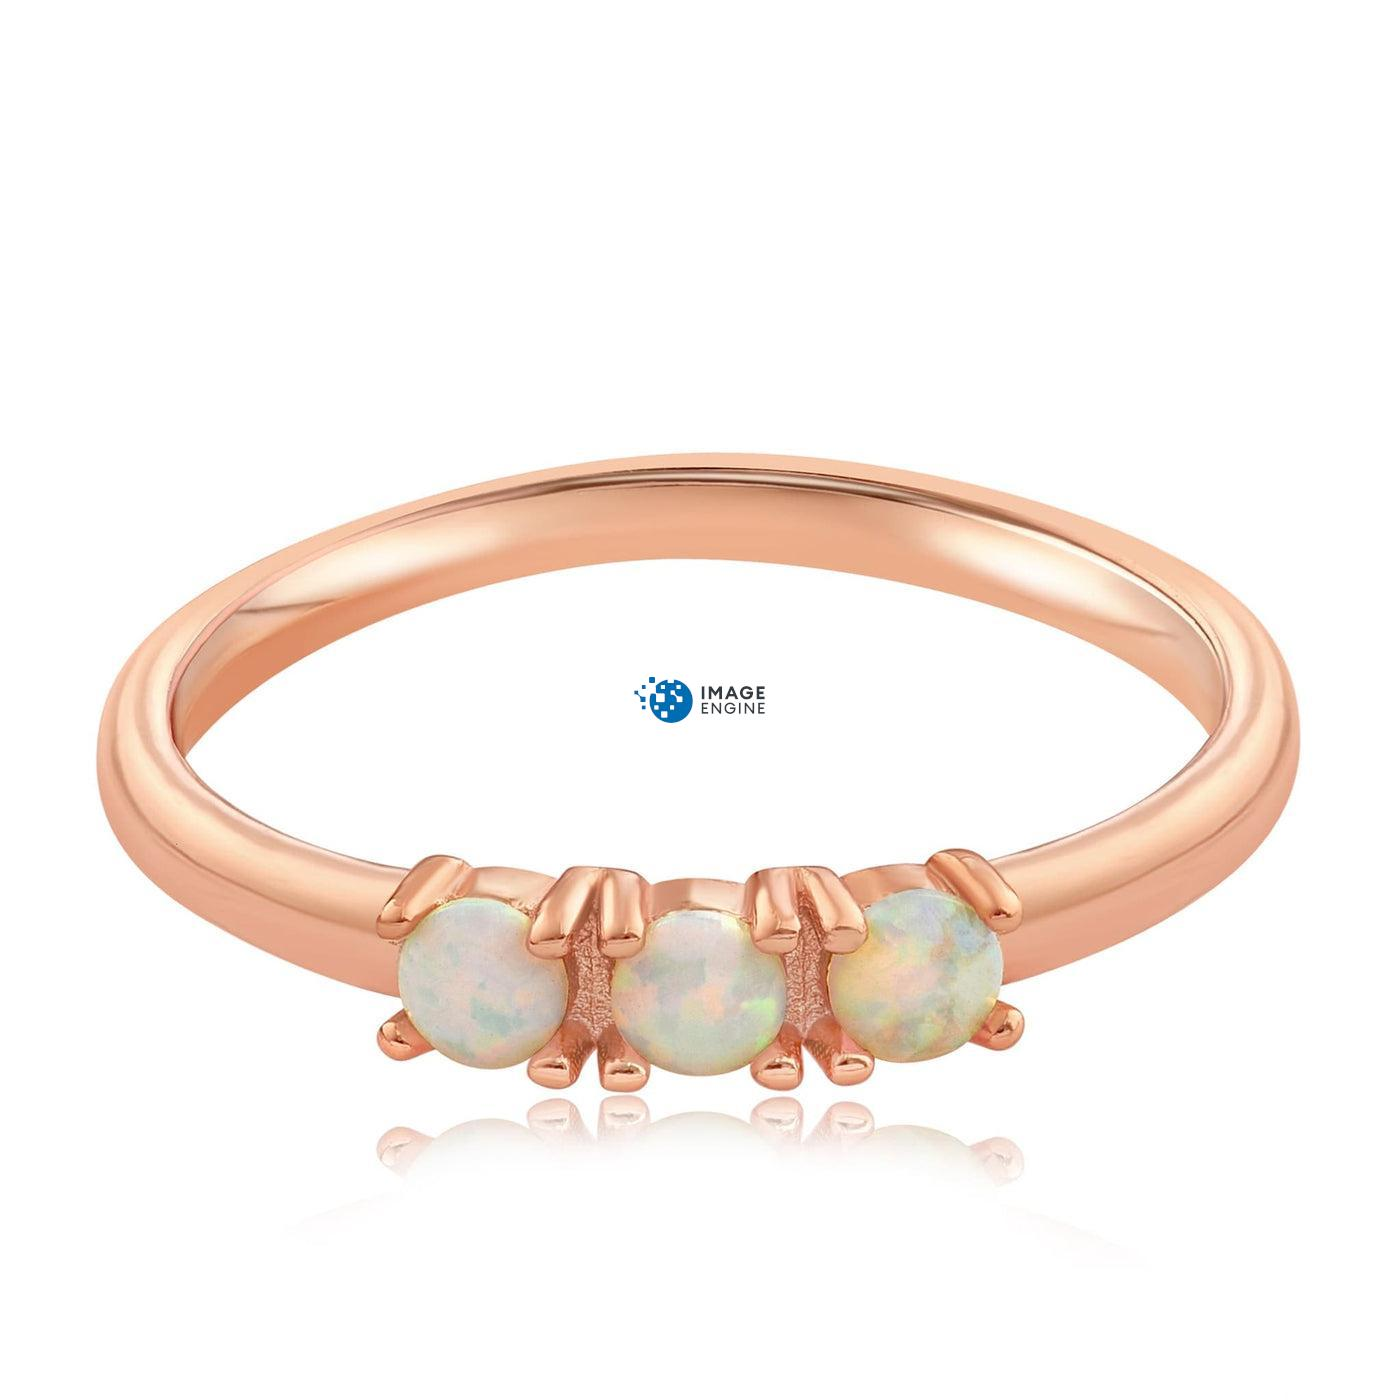 Simple Dots White Fire Opal Ring - Front View Facing Down - 18K Rose Gold Vermeil